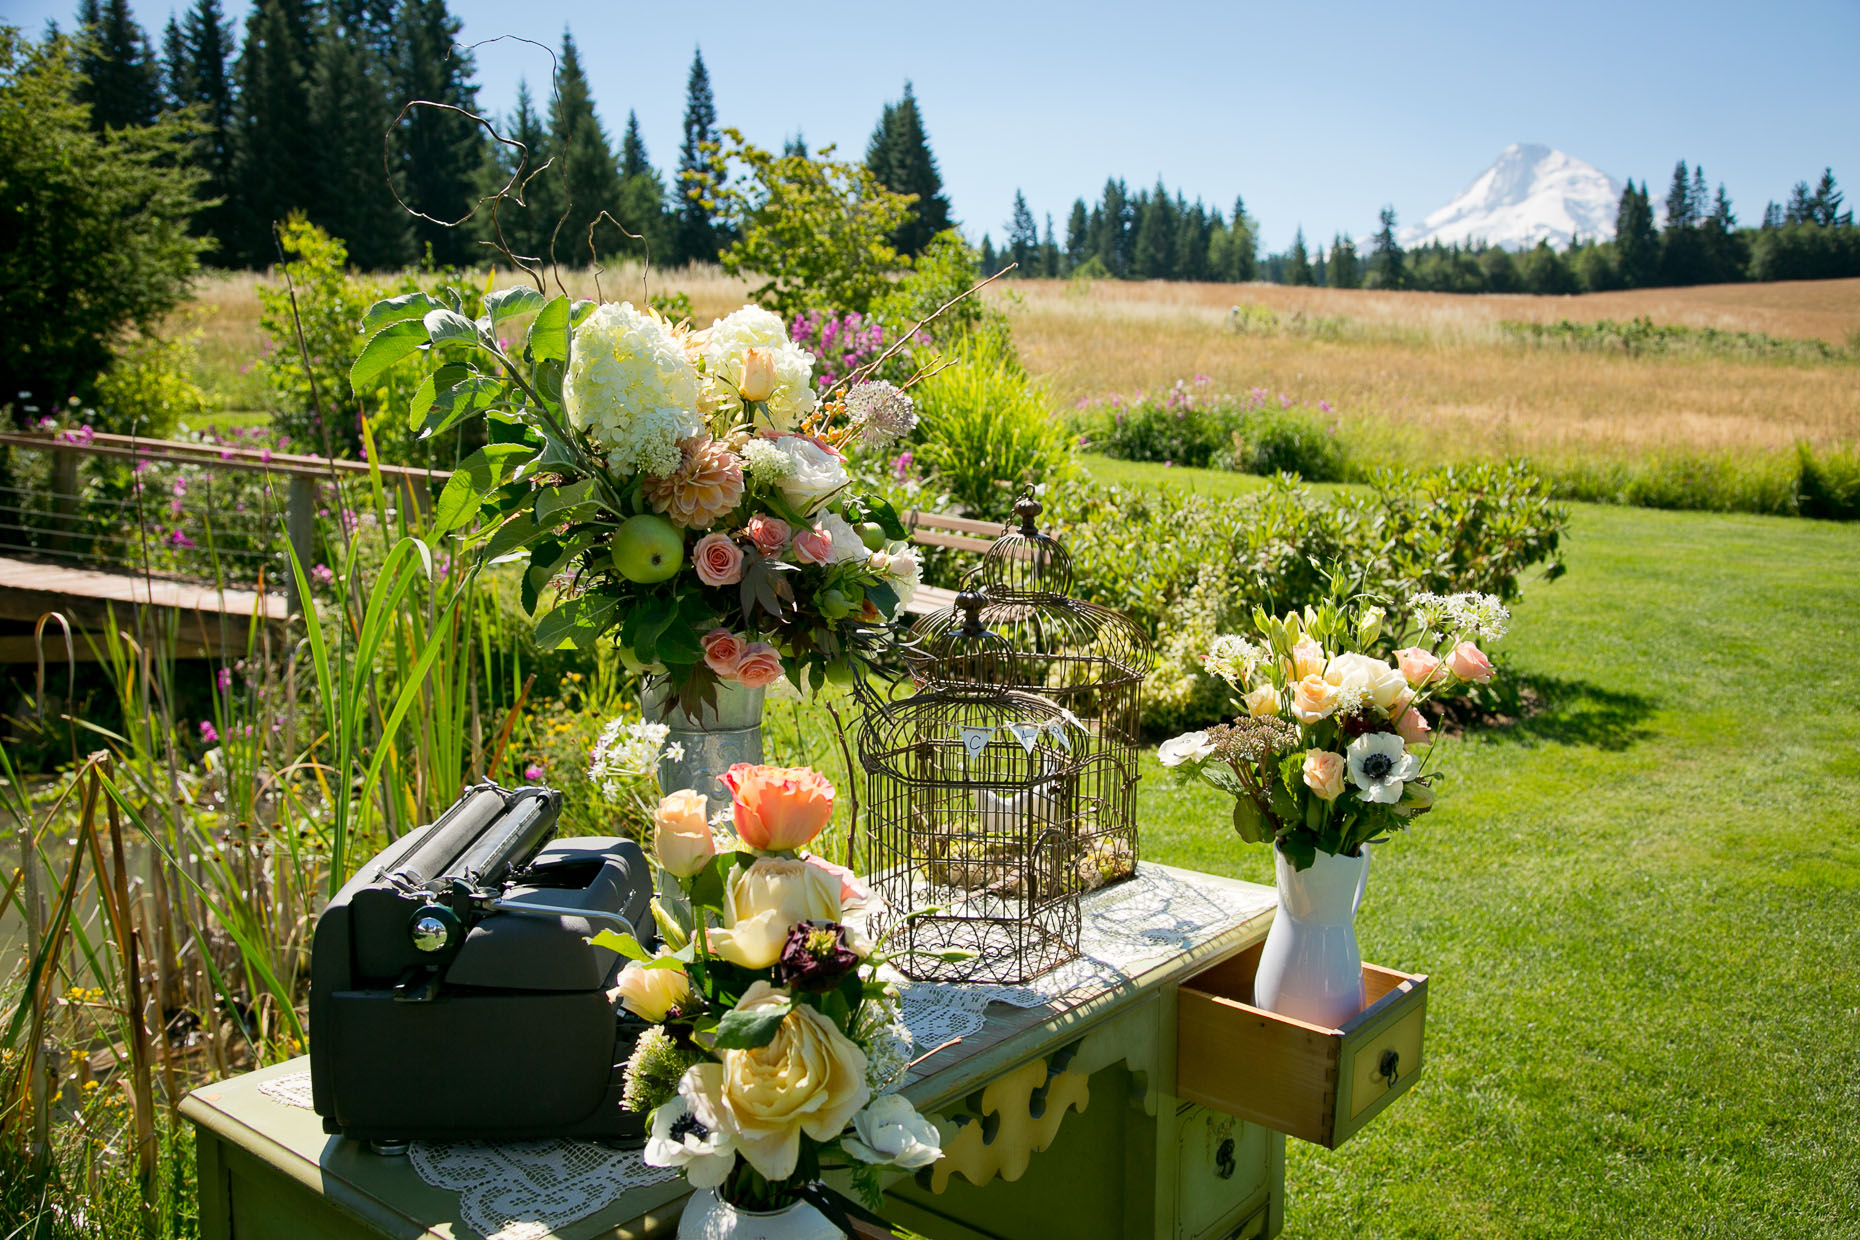 mt-hood-bed-breakfast-wedding-02.jpg